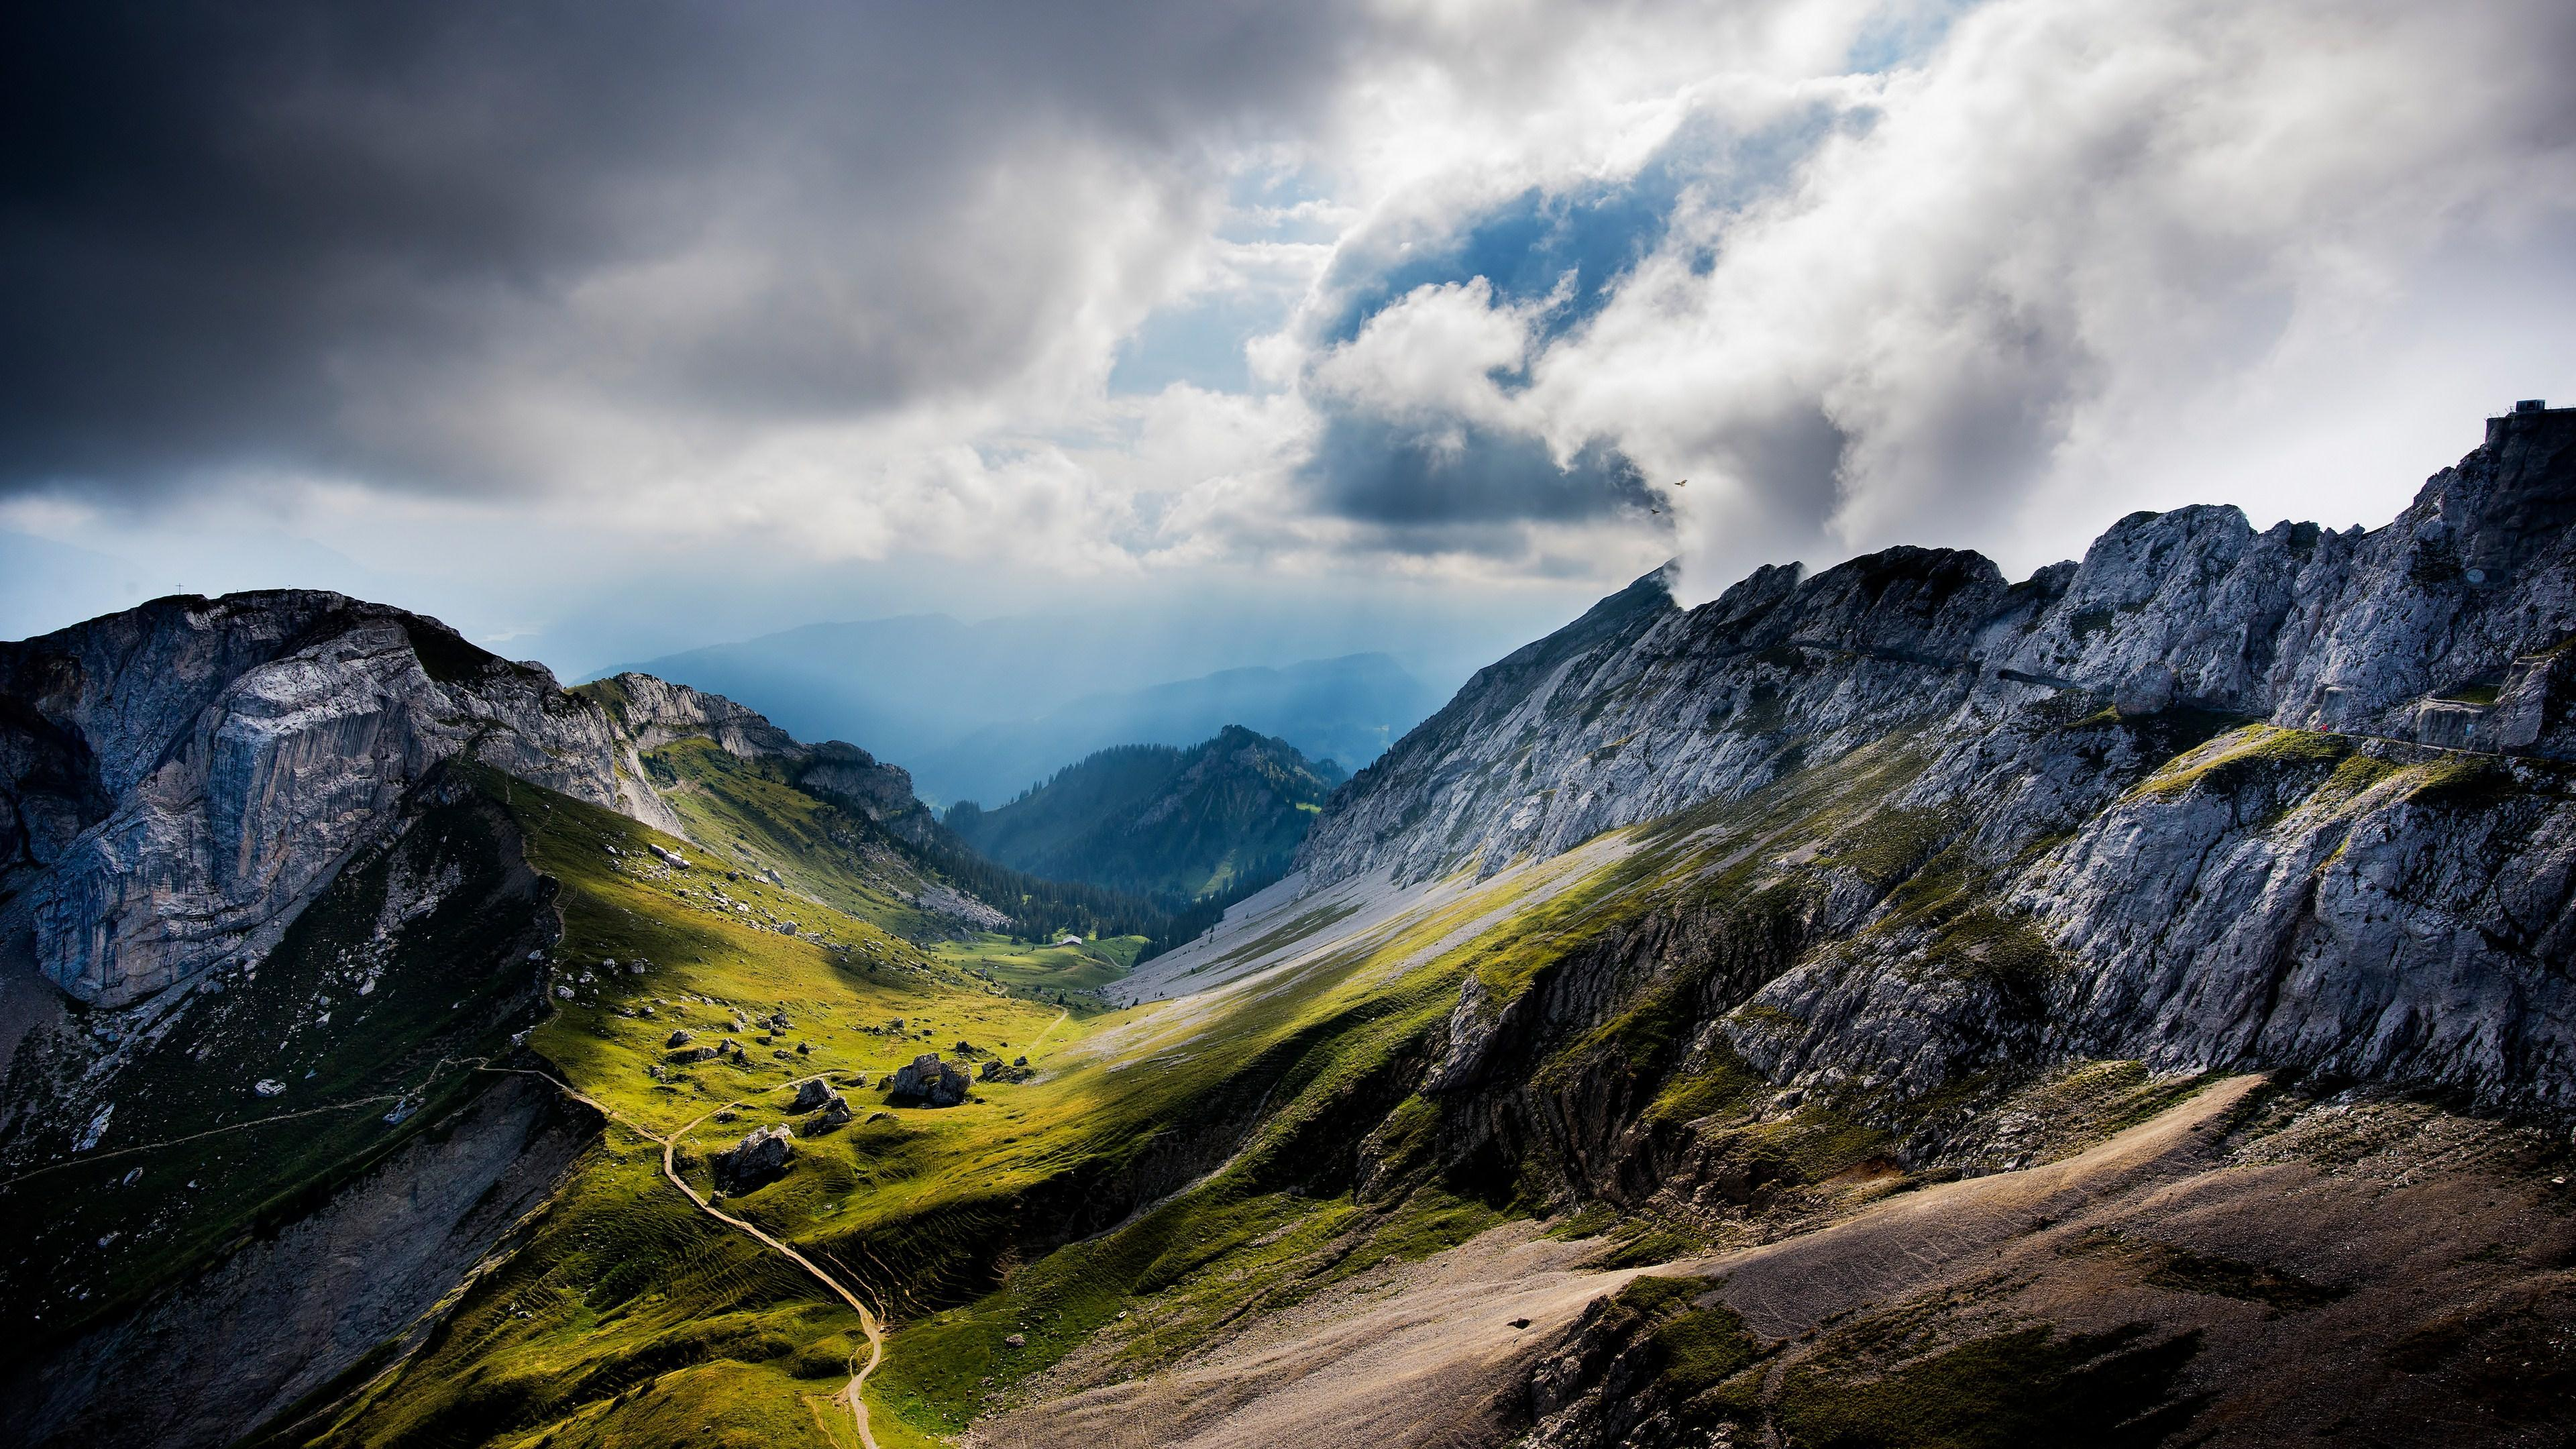 Mountain Wallpaper For Android Apk Download